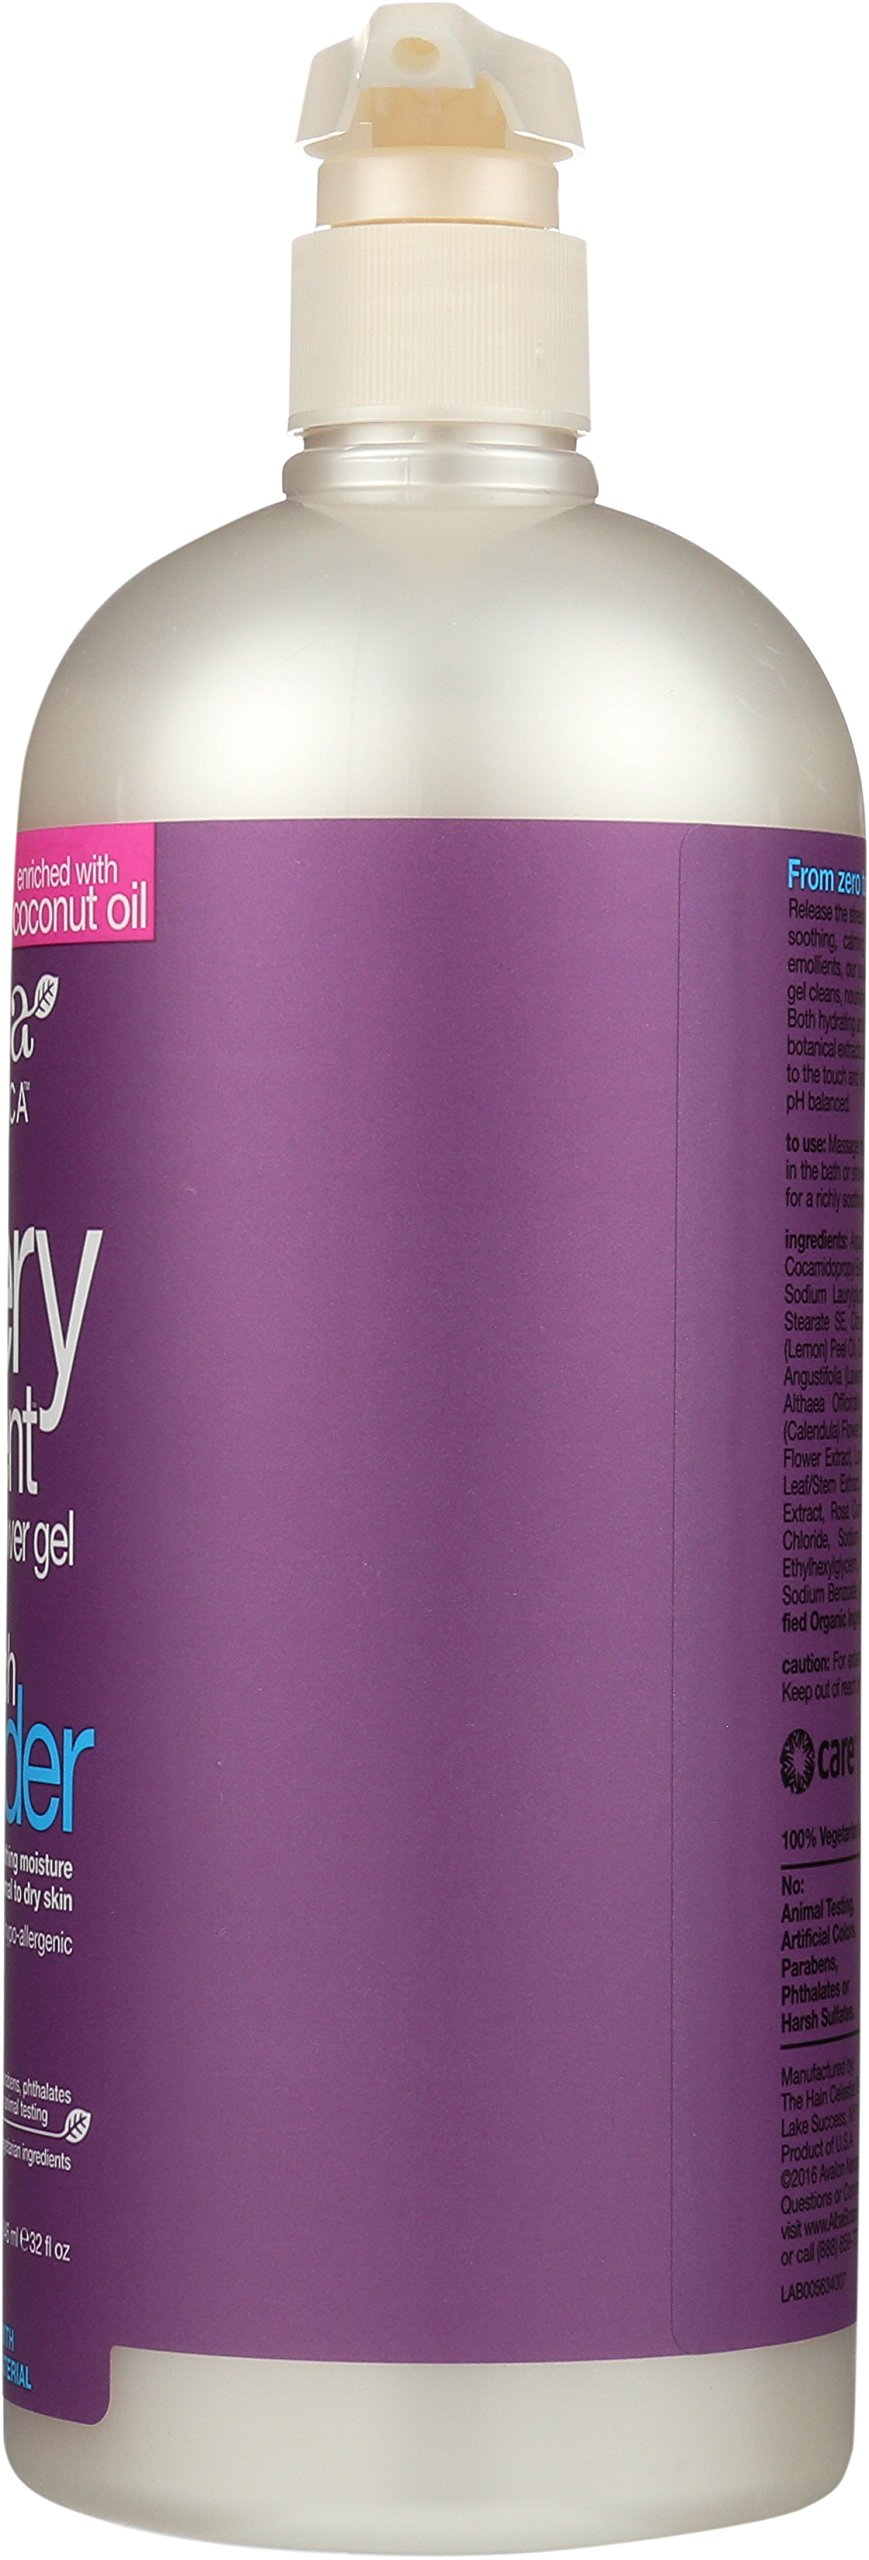 Alba Botanica Very Emollient, French Lavender Bath & Shower Gel, 32 Ounce by Alba Botanica (Image #9)